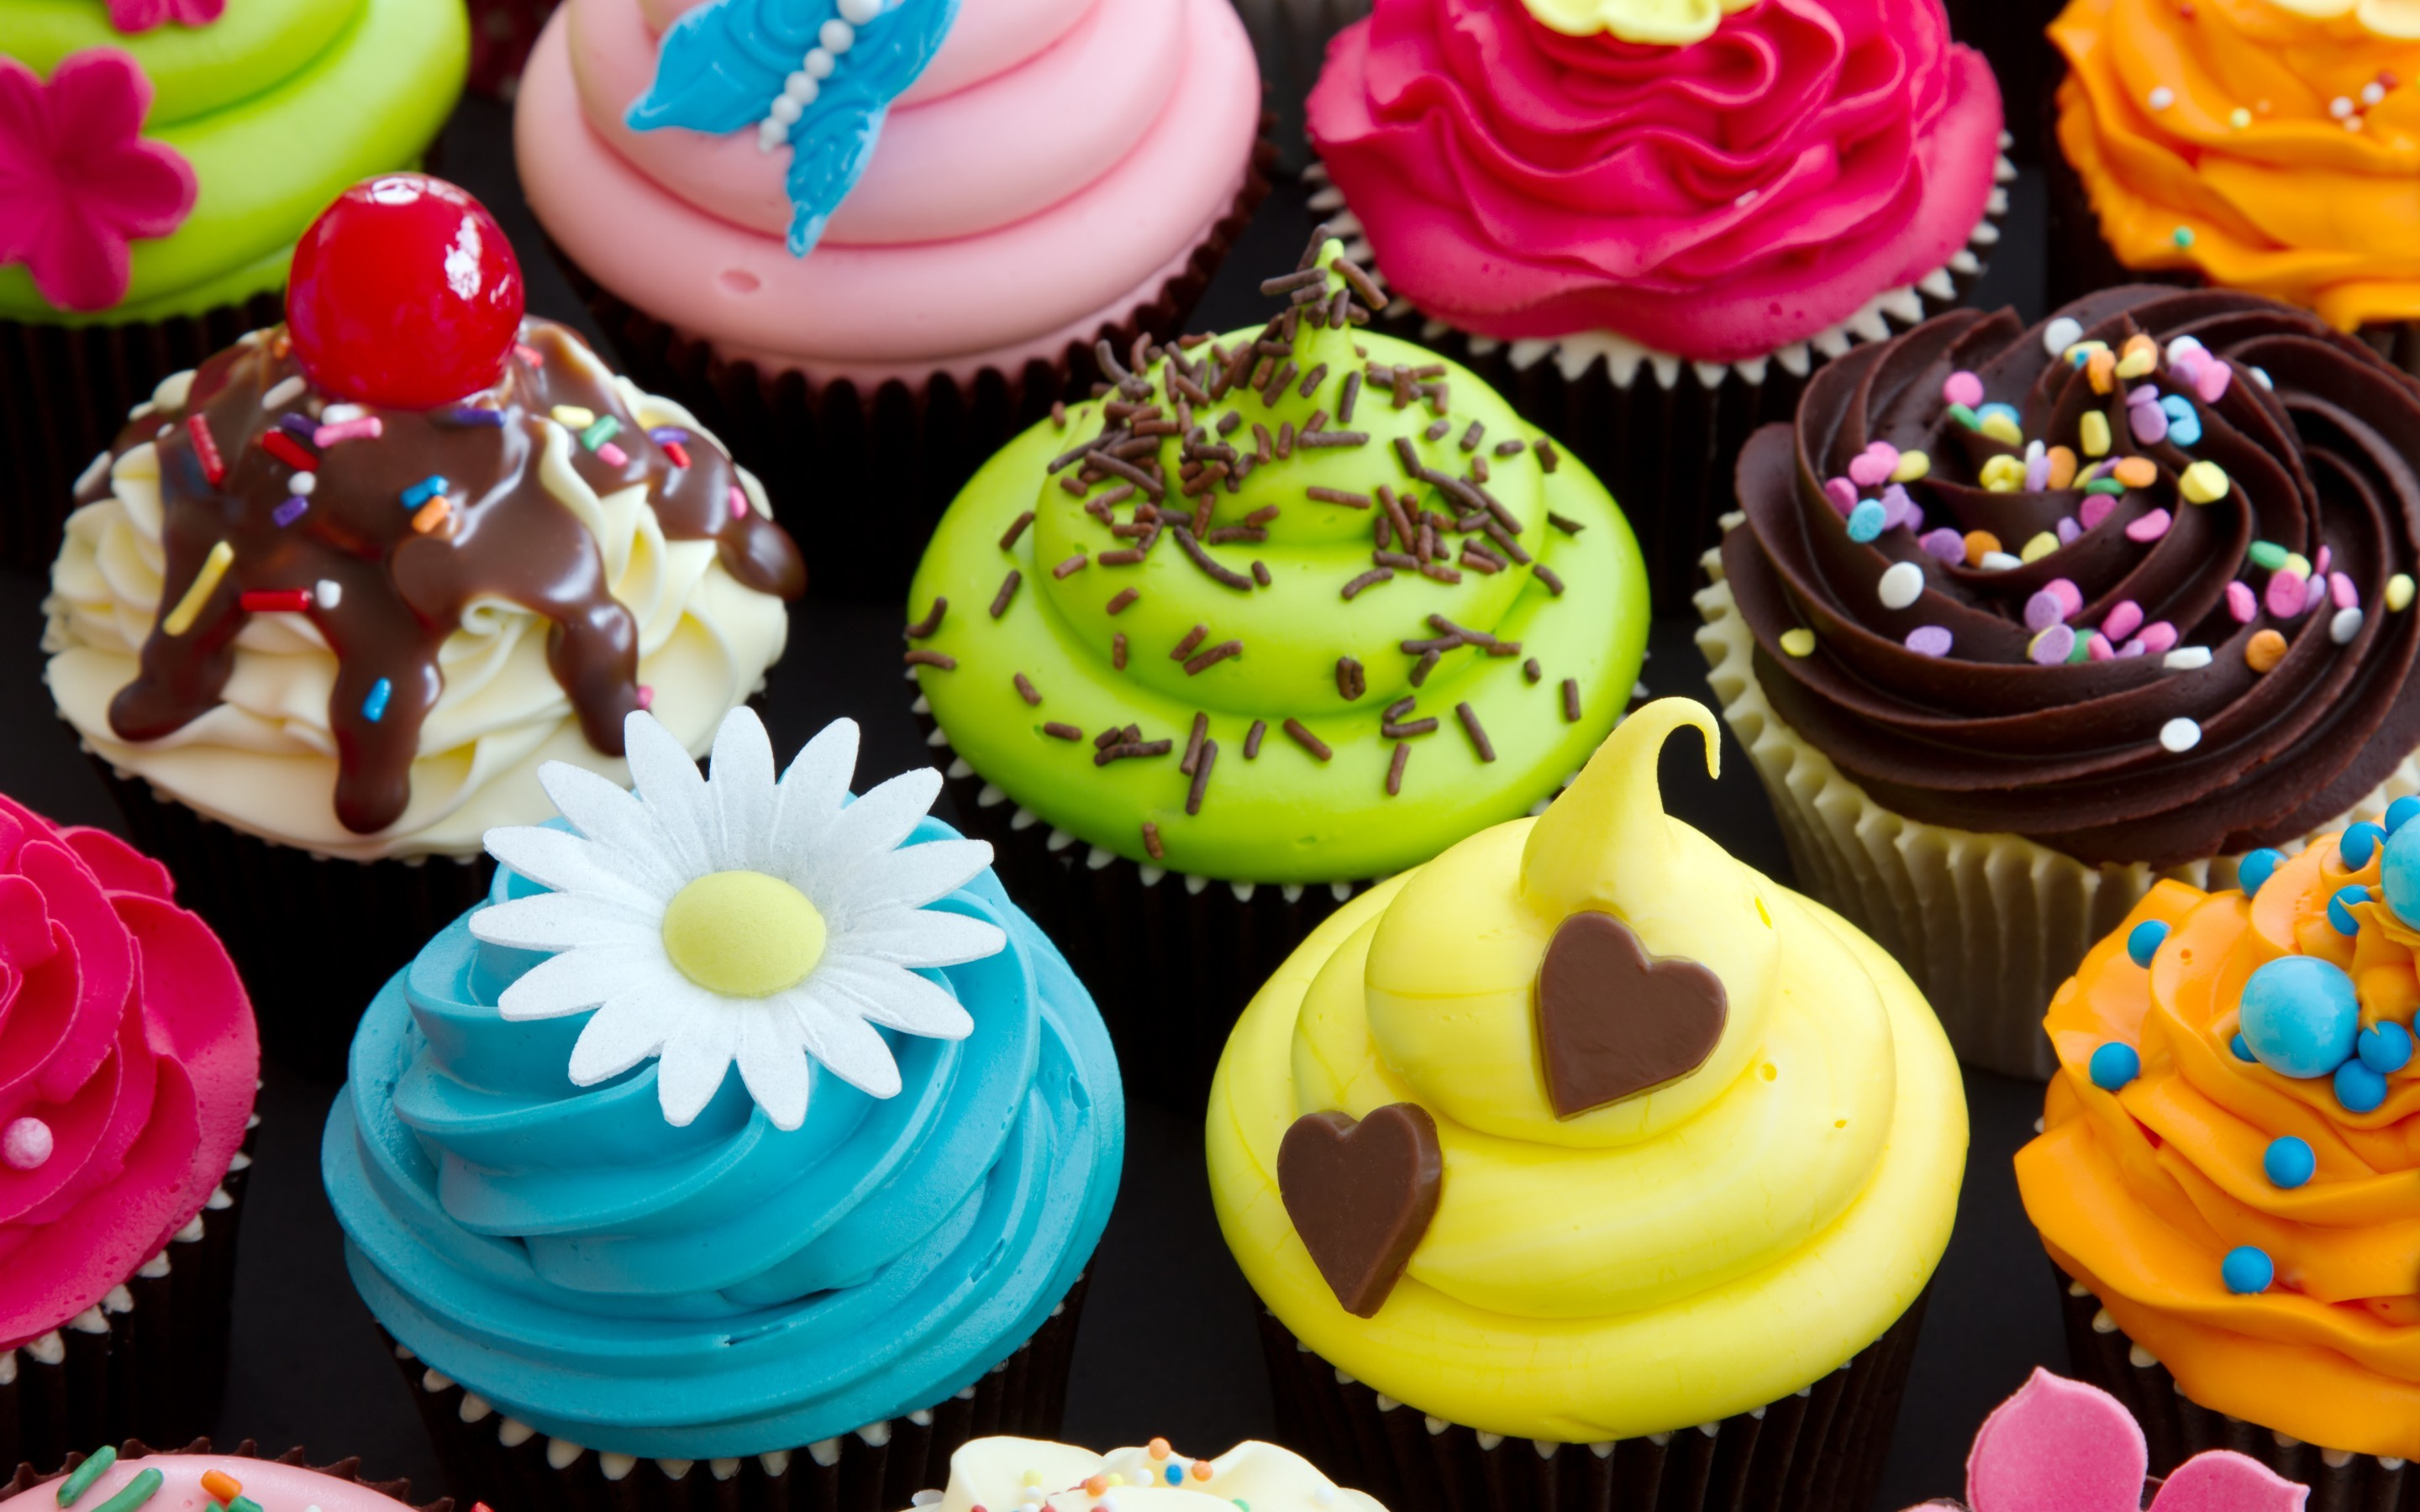 Res: 2880x1800, Colorful Cream Cupcake Pink · HD Wallpaper | Background Image ID:421304